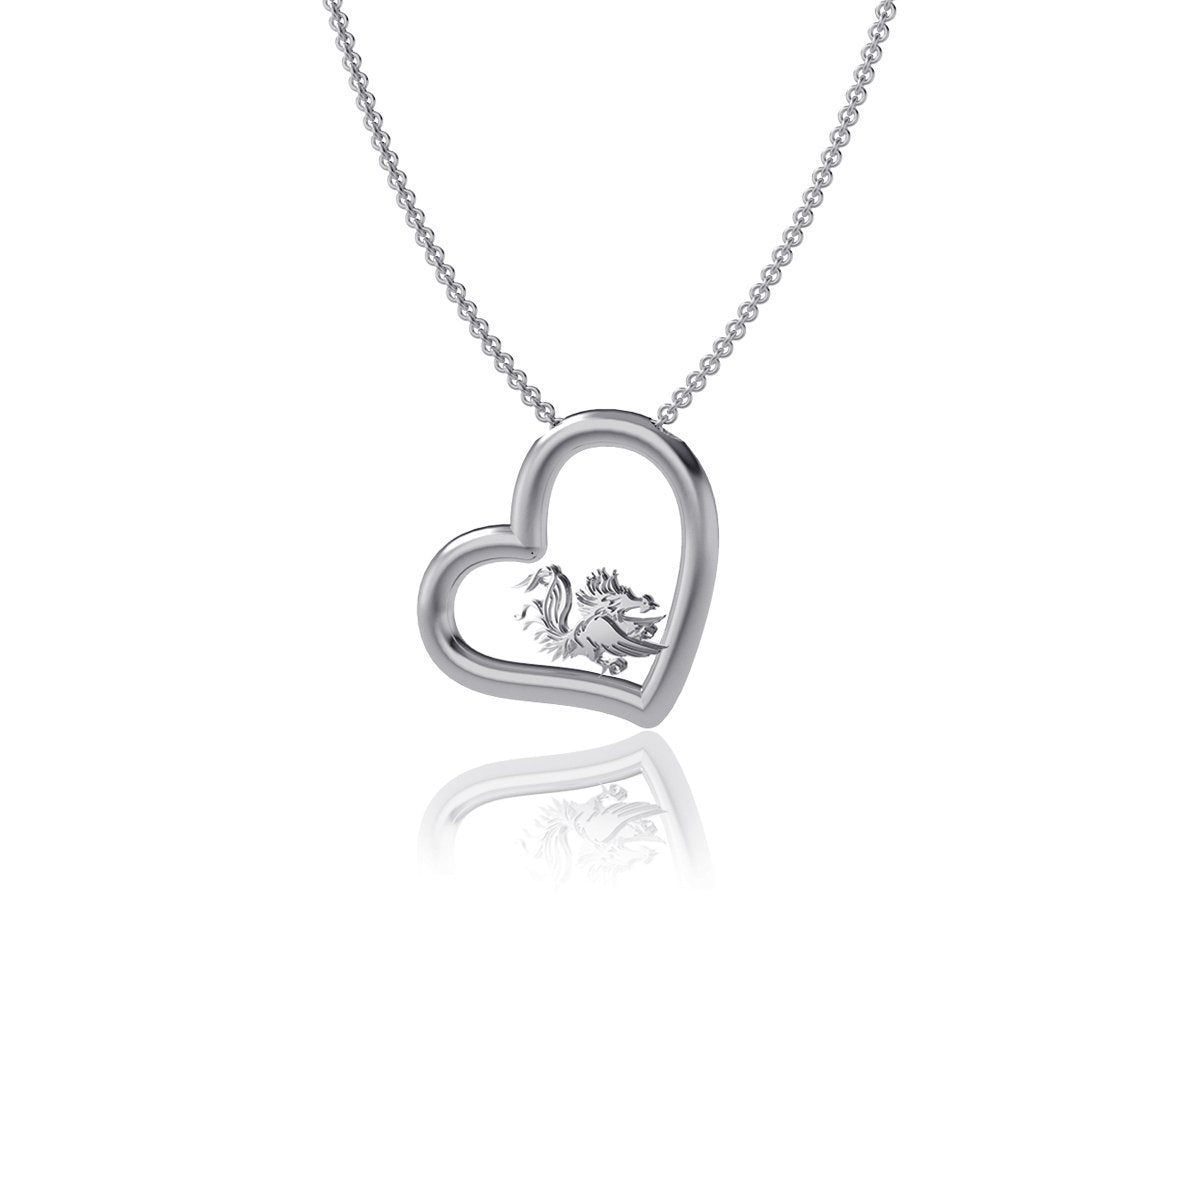 University of South Carolina Heart Necklace